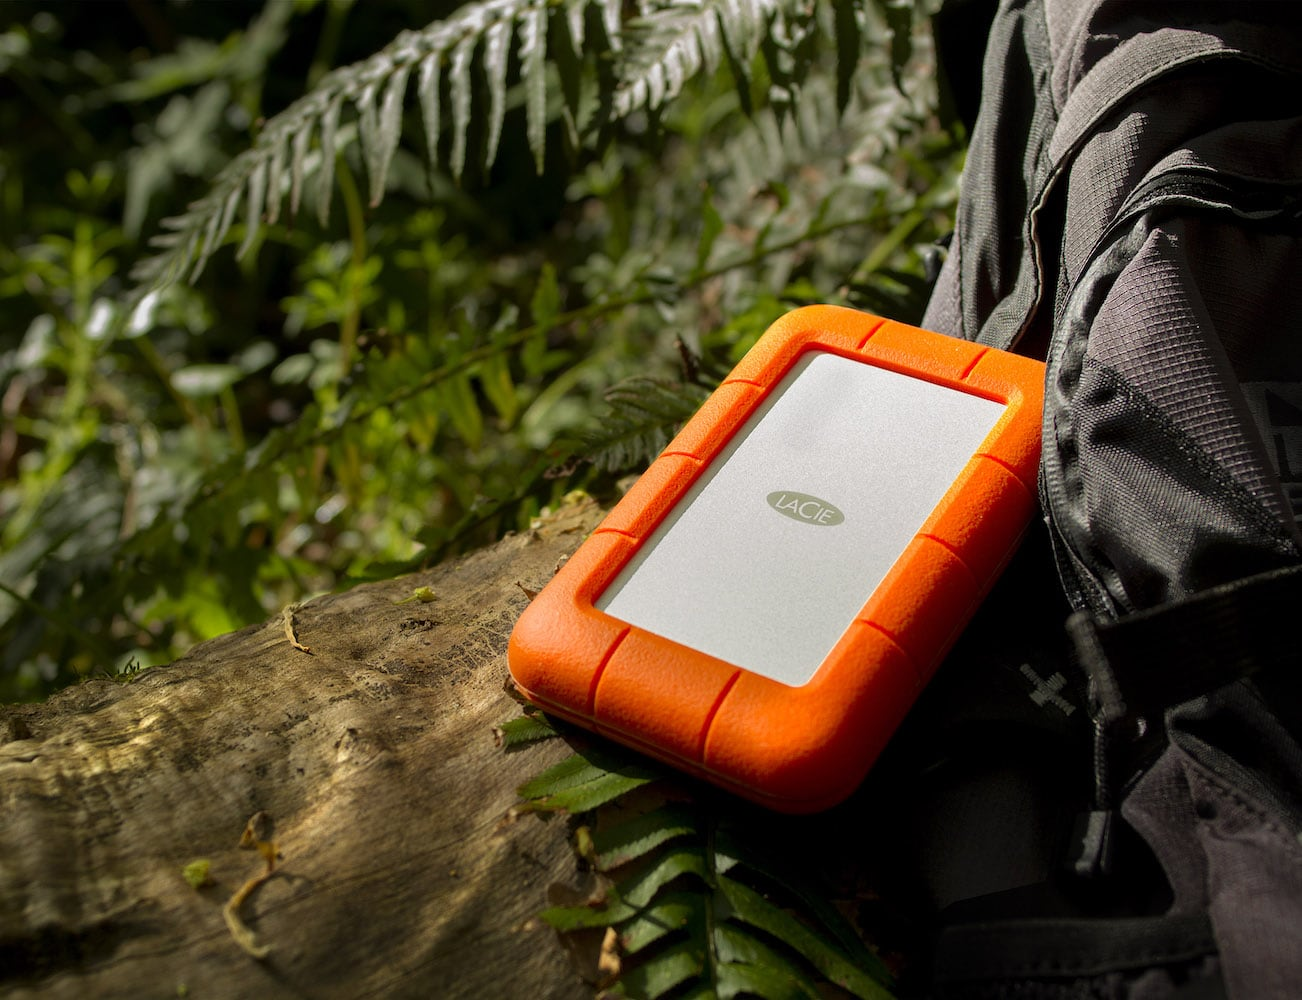 13 Travel tech and gadgets for every adventure - LaCie 03